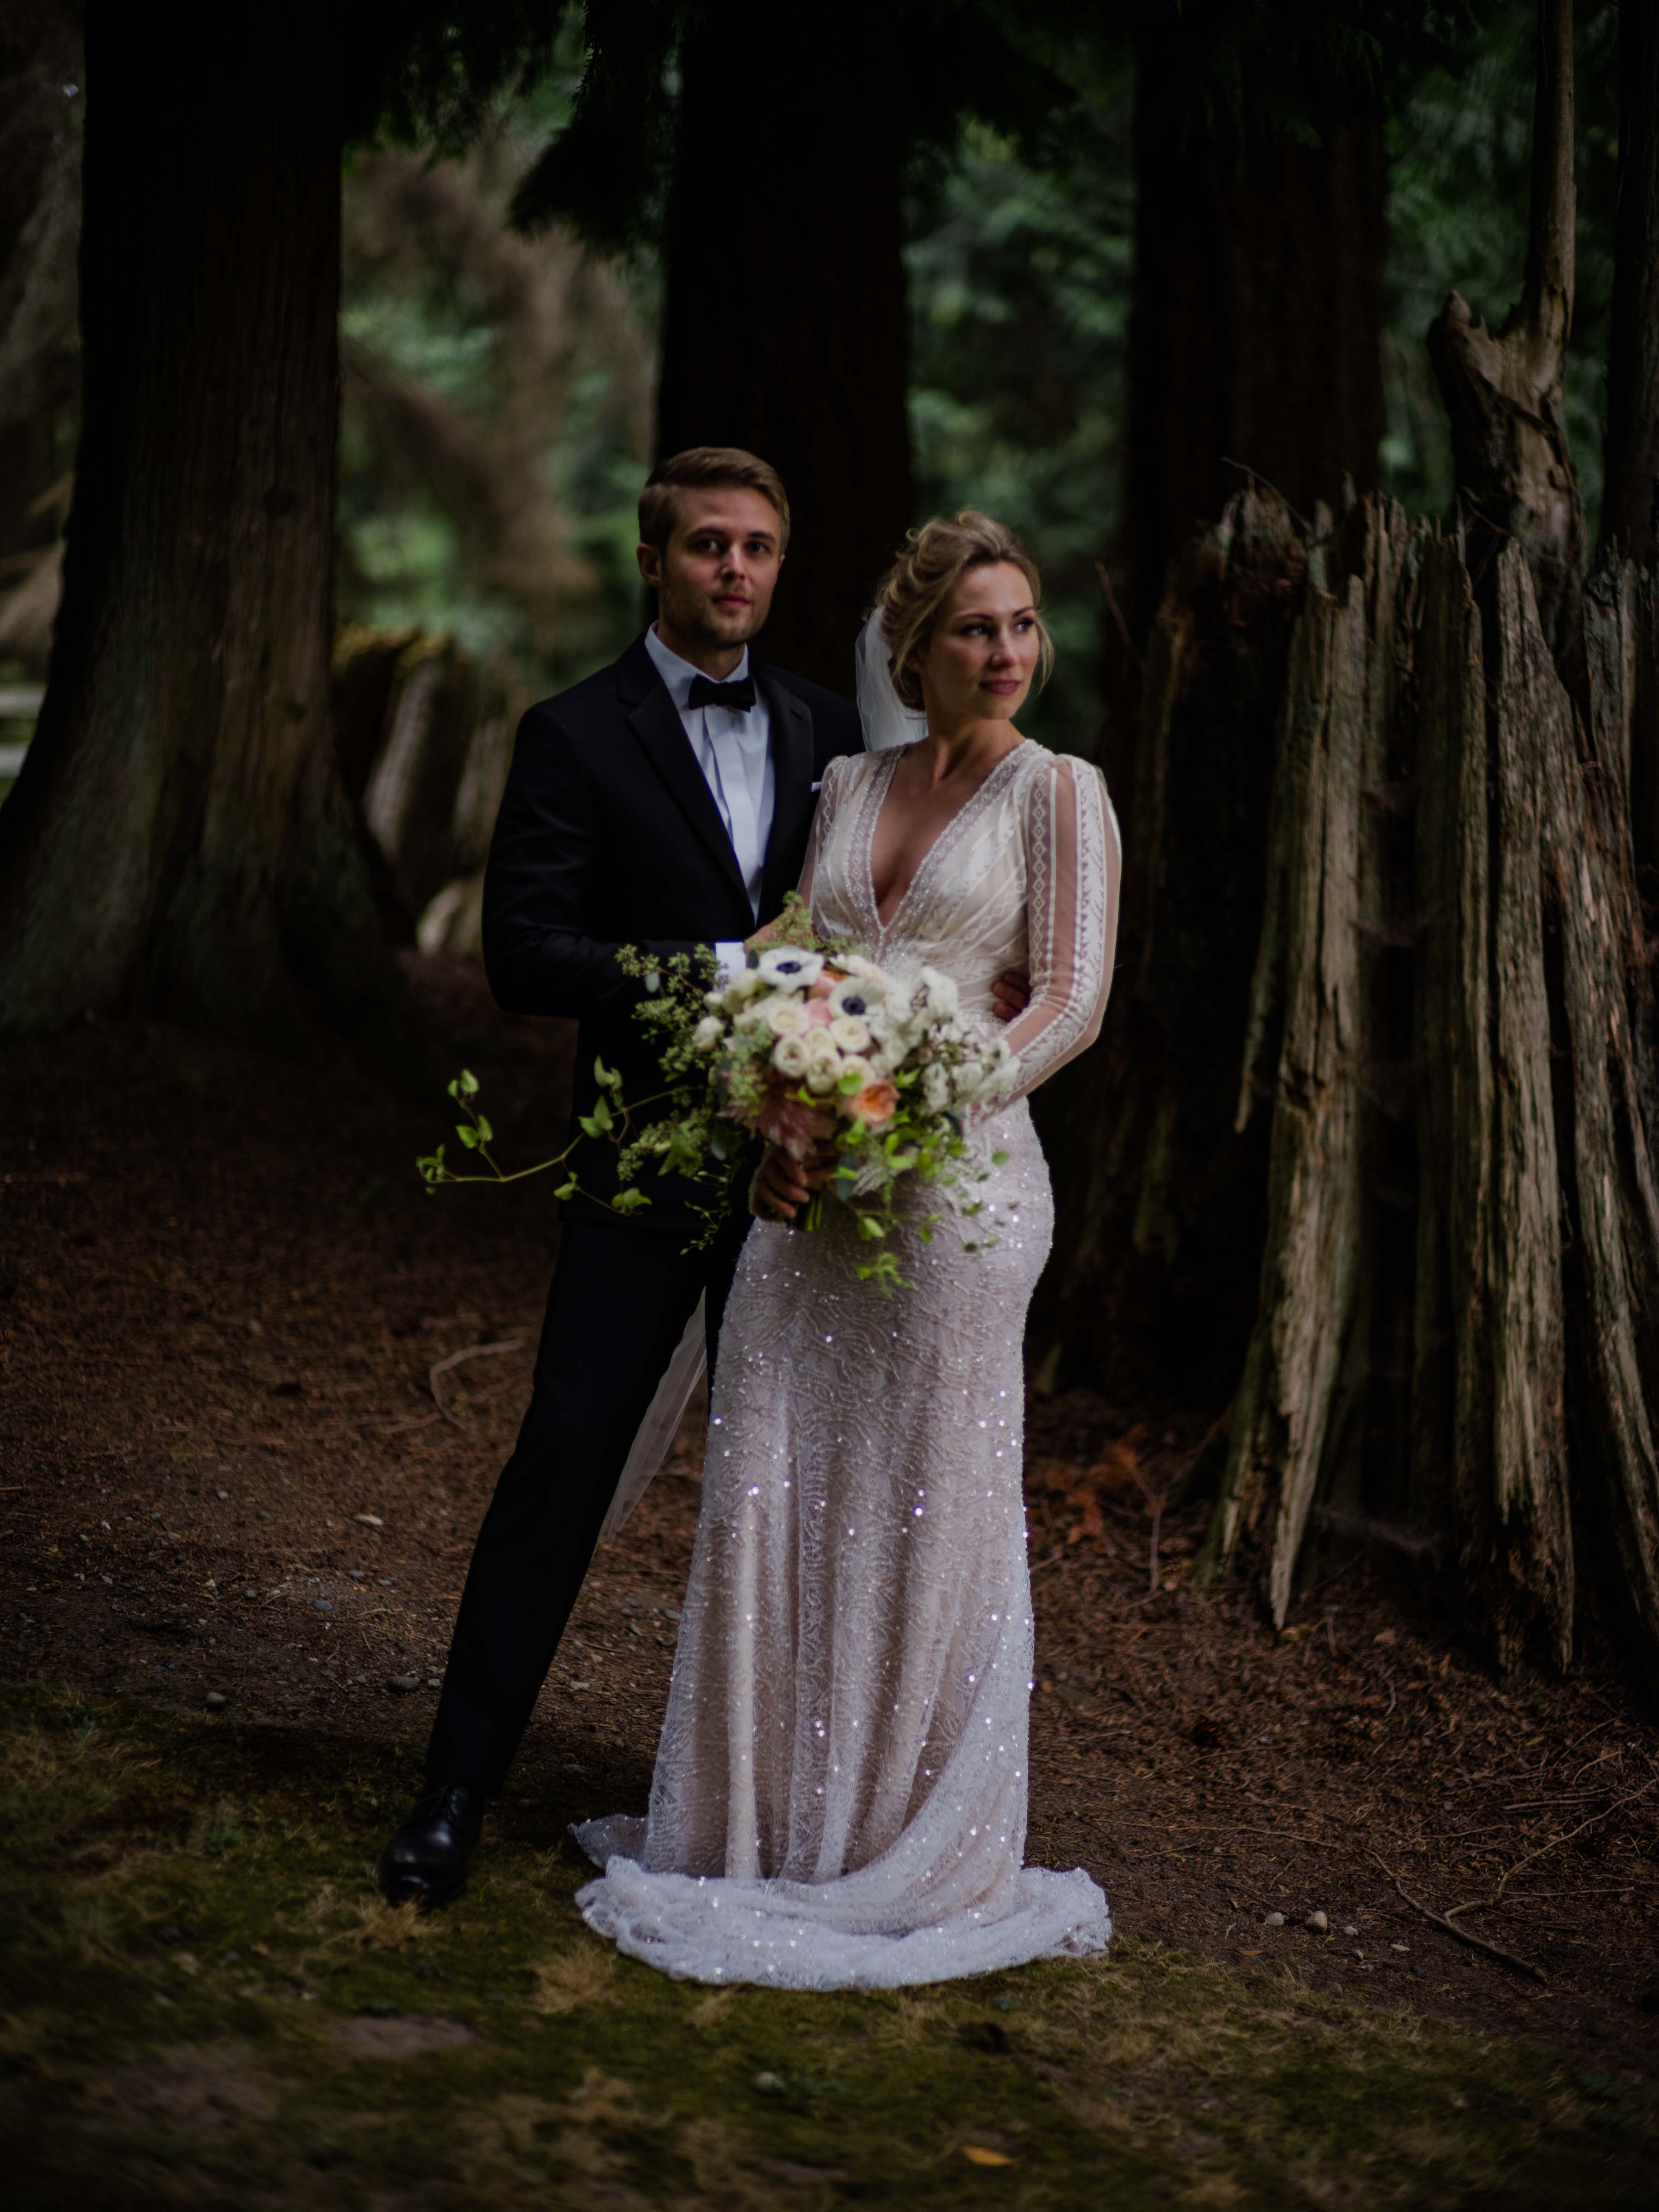 Bride and groom at their Chateau Lill wedding, designed by Flora Nova Design